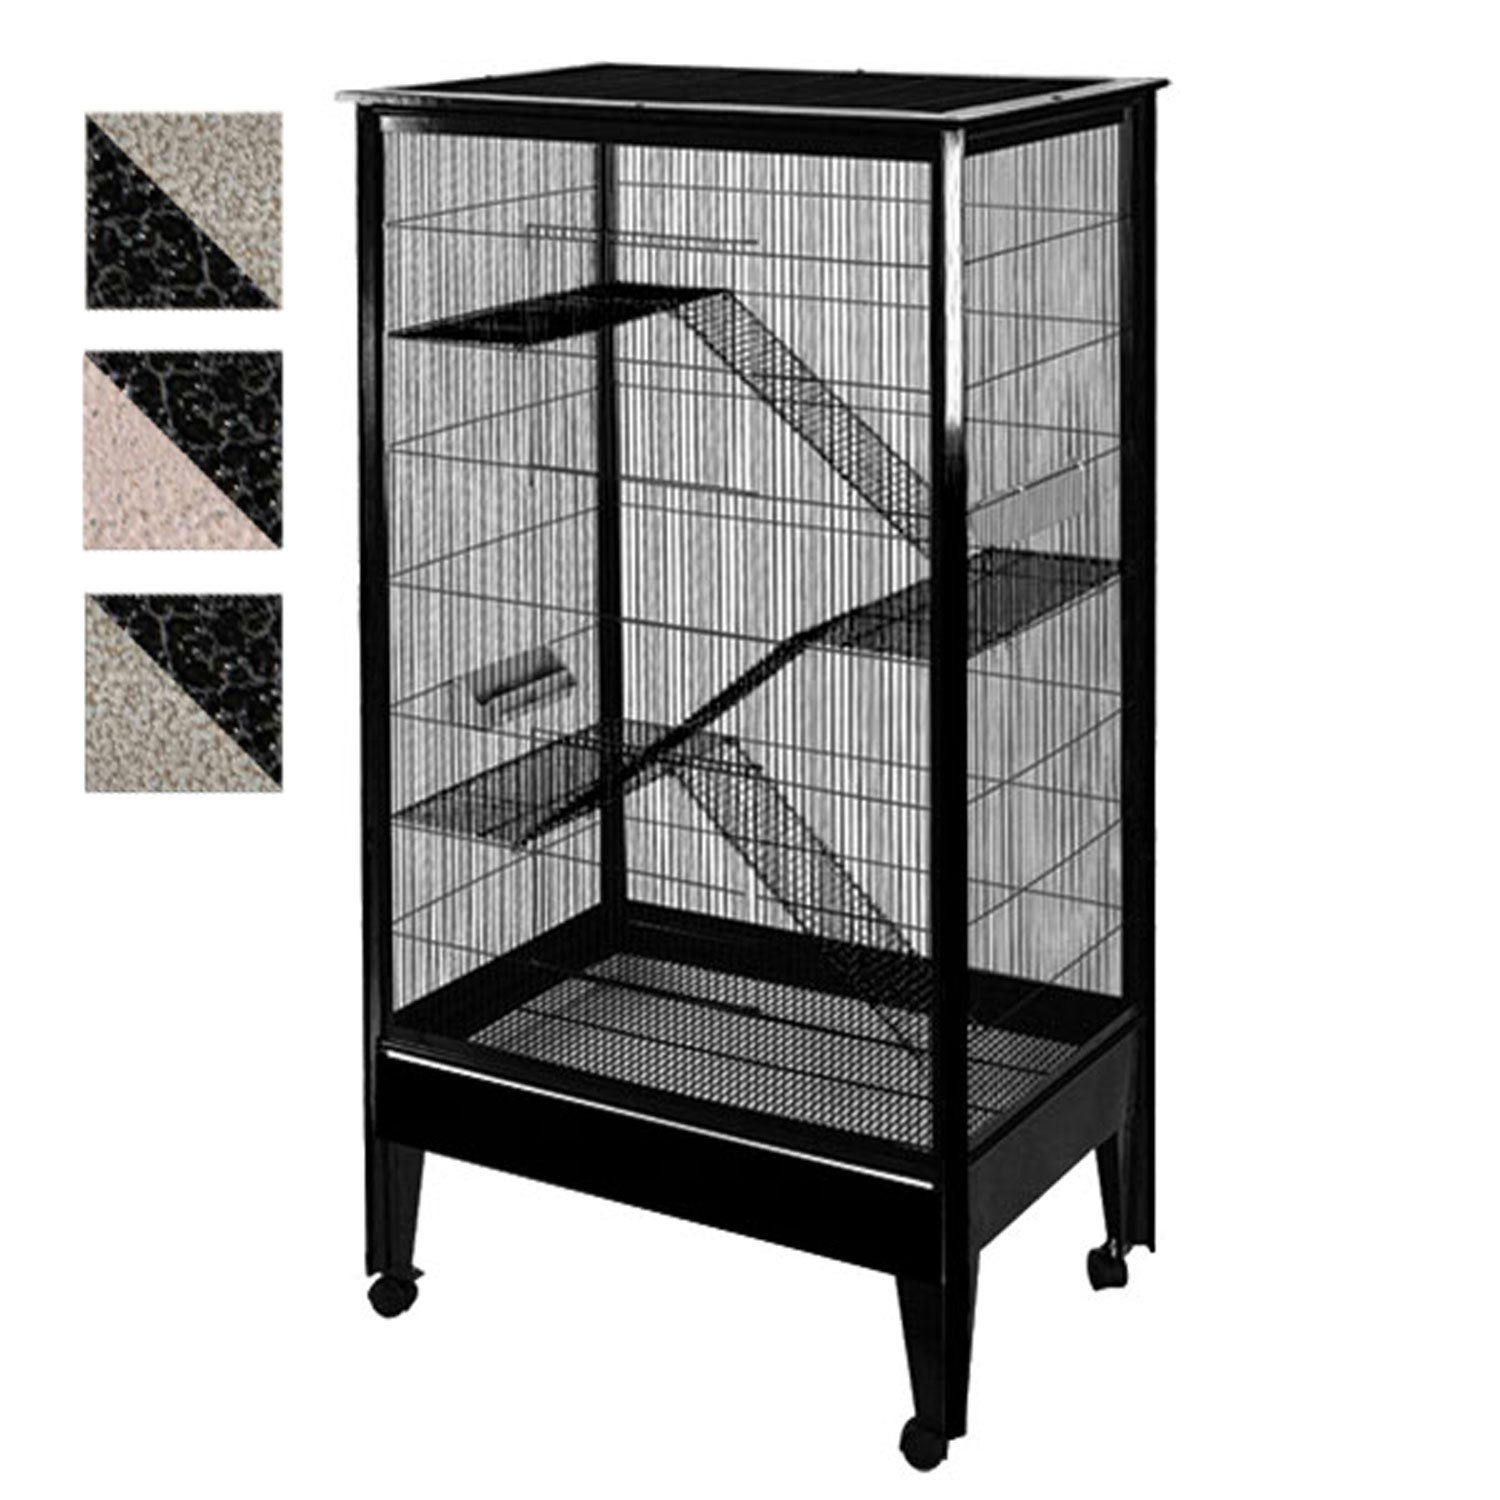 A&E Cage Company 4 Level Small Animal Cage on Casters in Black and Platinum